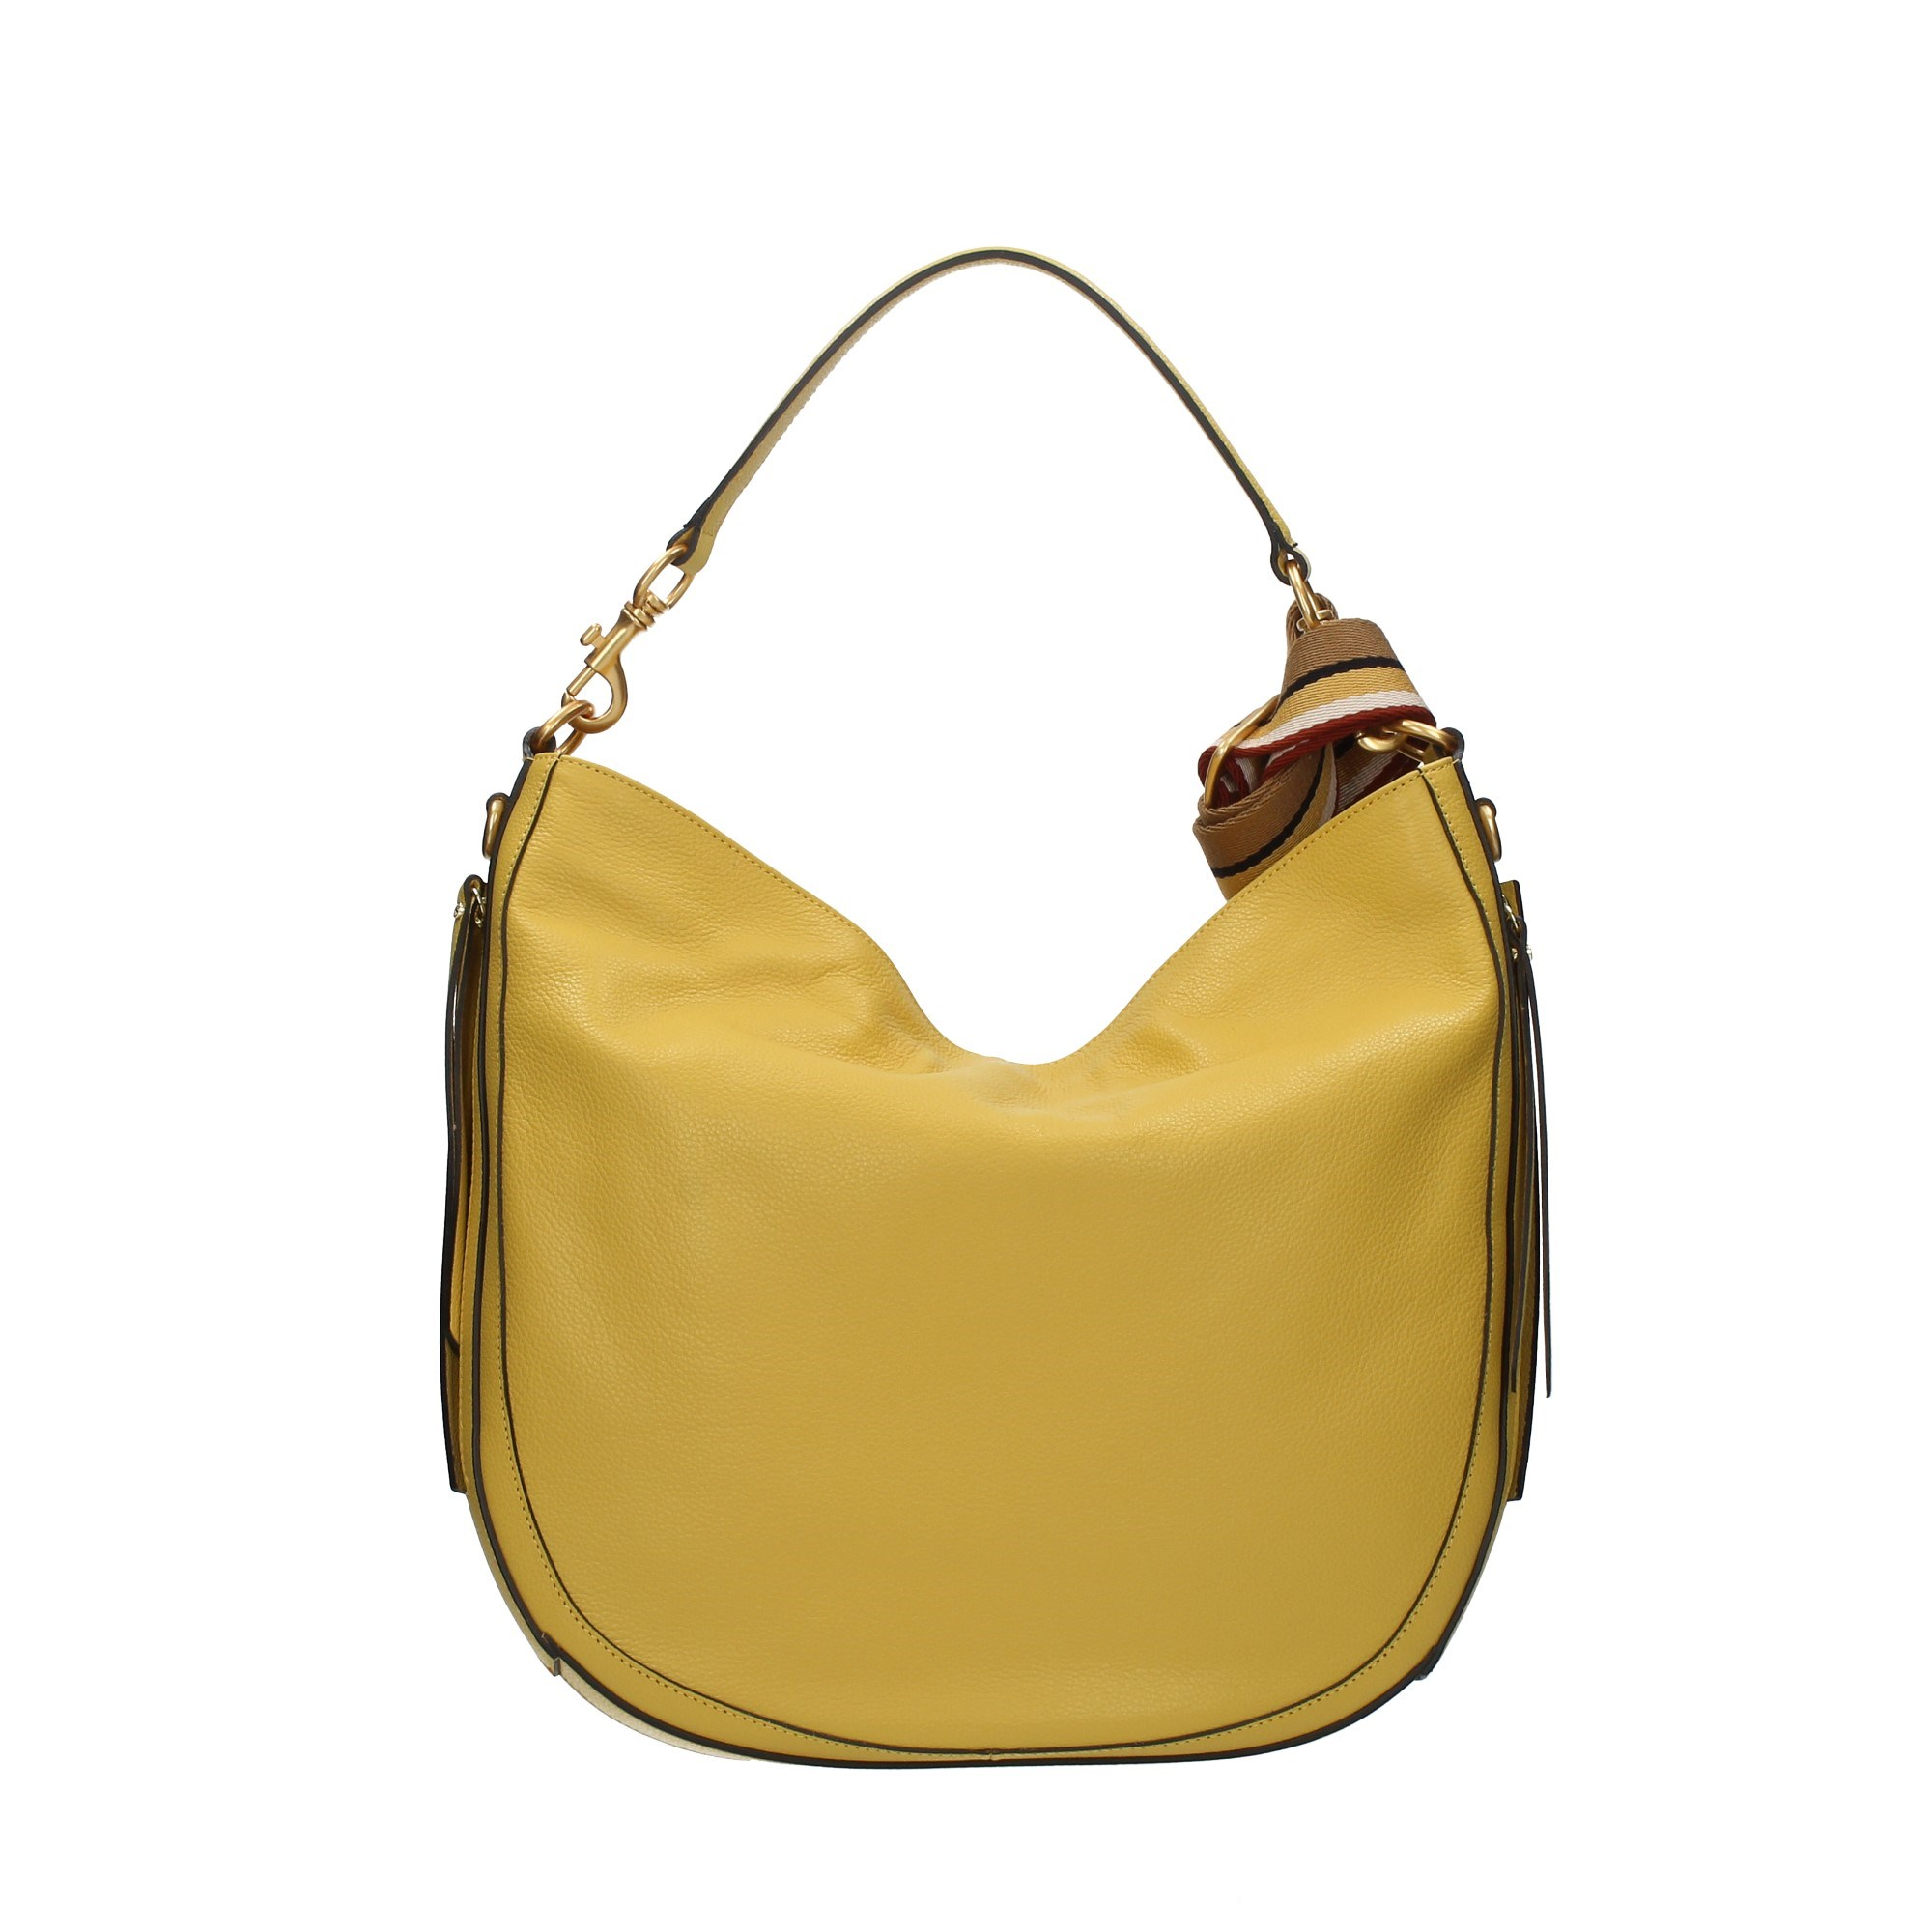 Gianni Chiarini Accessories Women Shoulder Bags Yellow BS7172/20PE OLX-NA